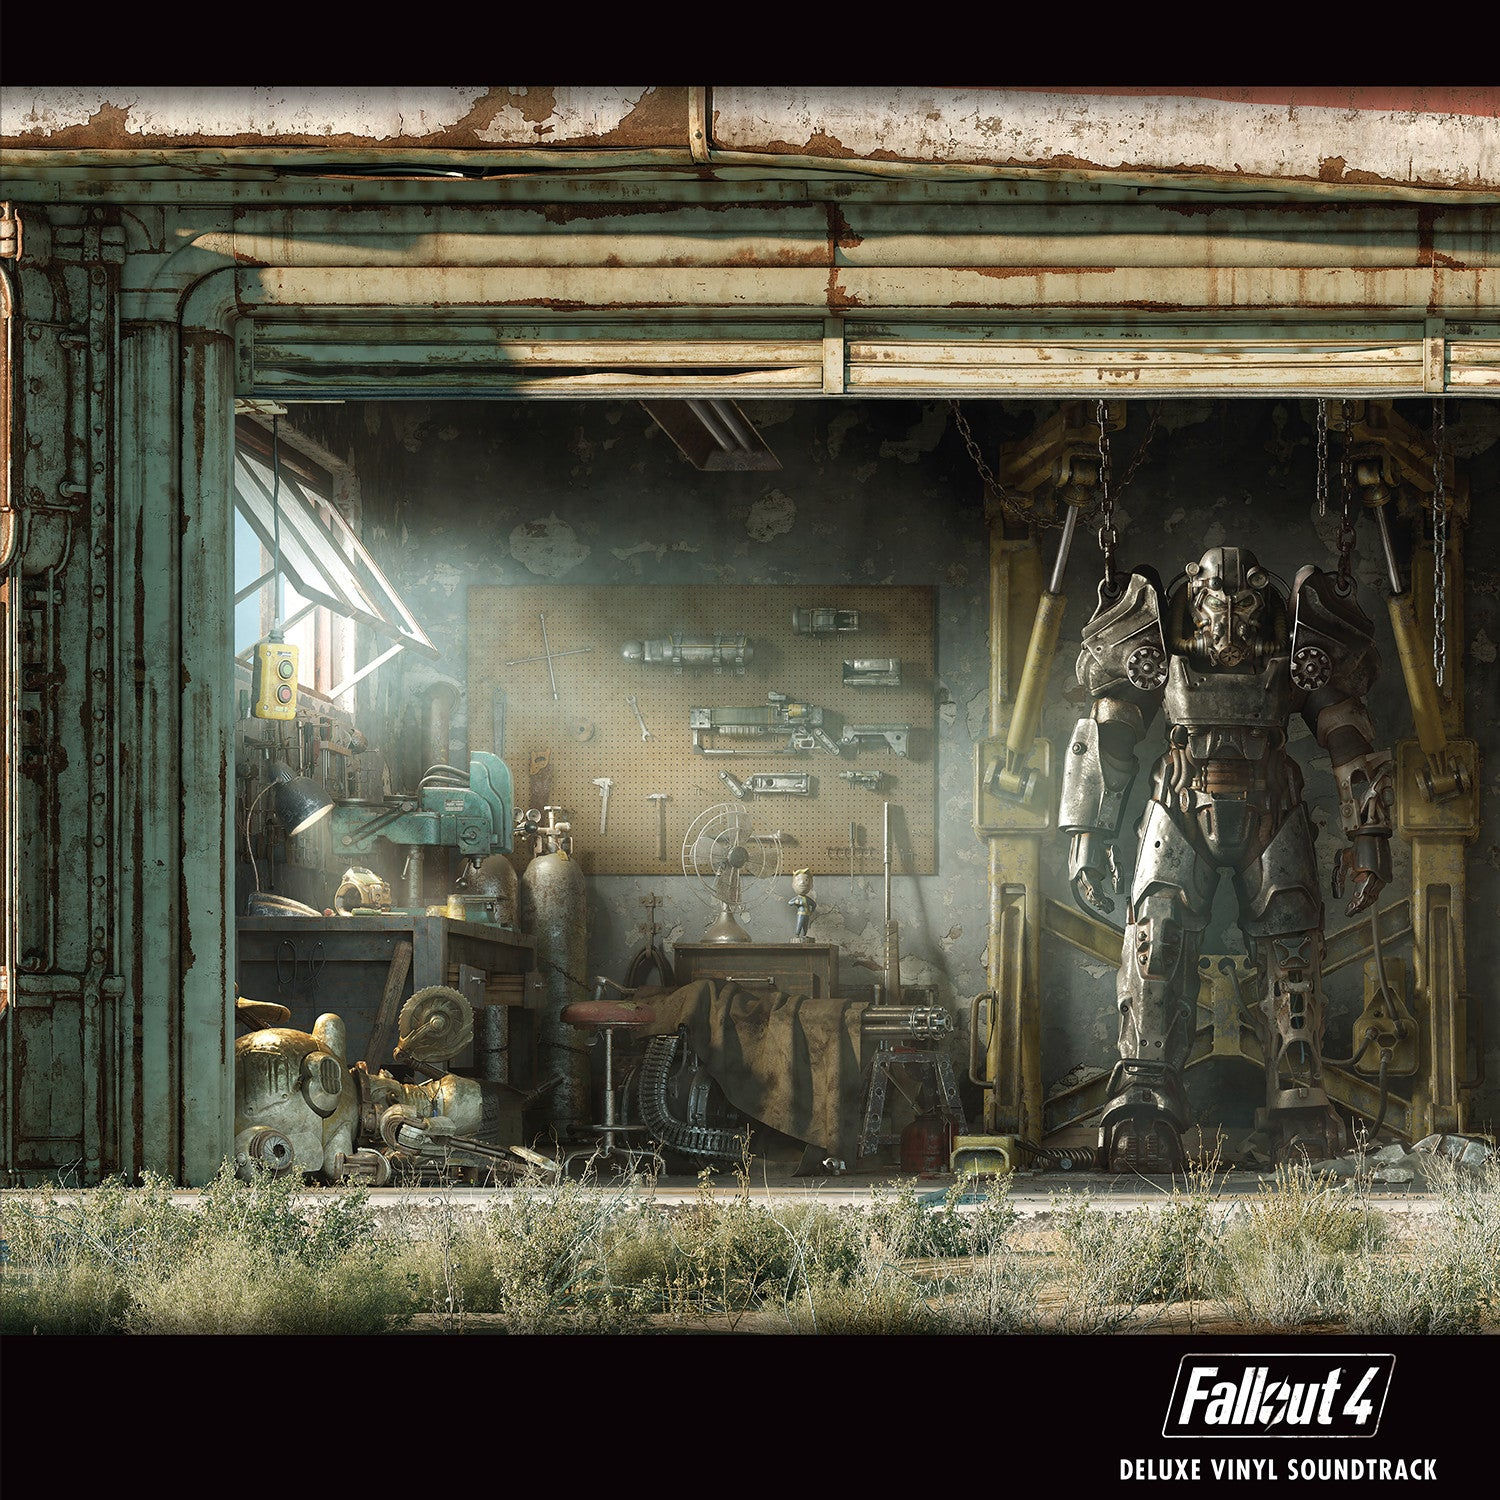 FALLOUT 4: DELUXE VINYL SOUNDTRACK SIX LP BOX SET & PICTURE DISC LP AVAILABLE NOW